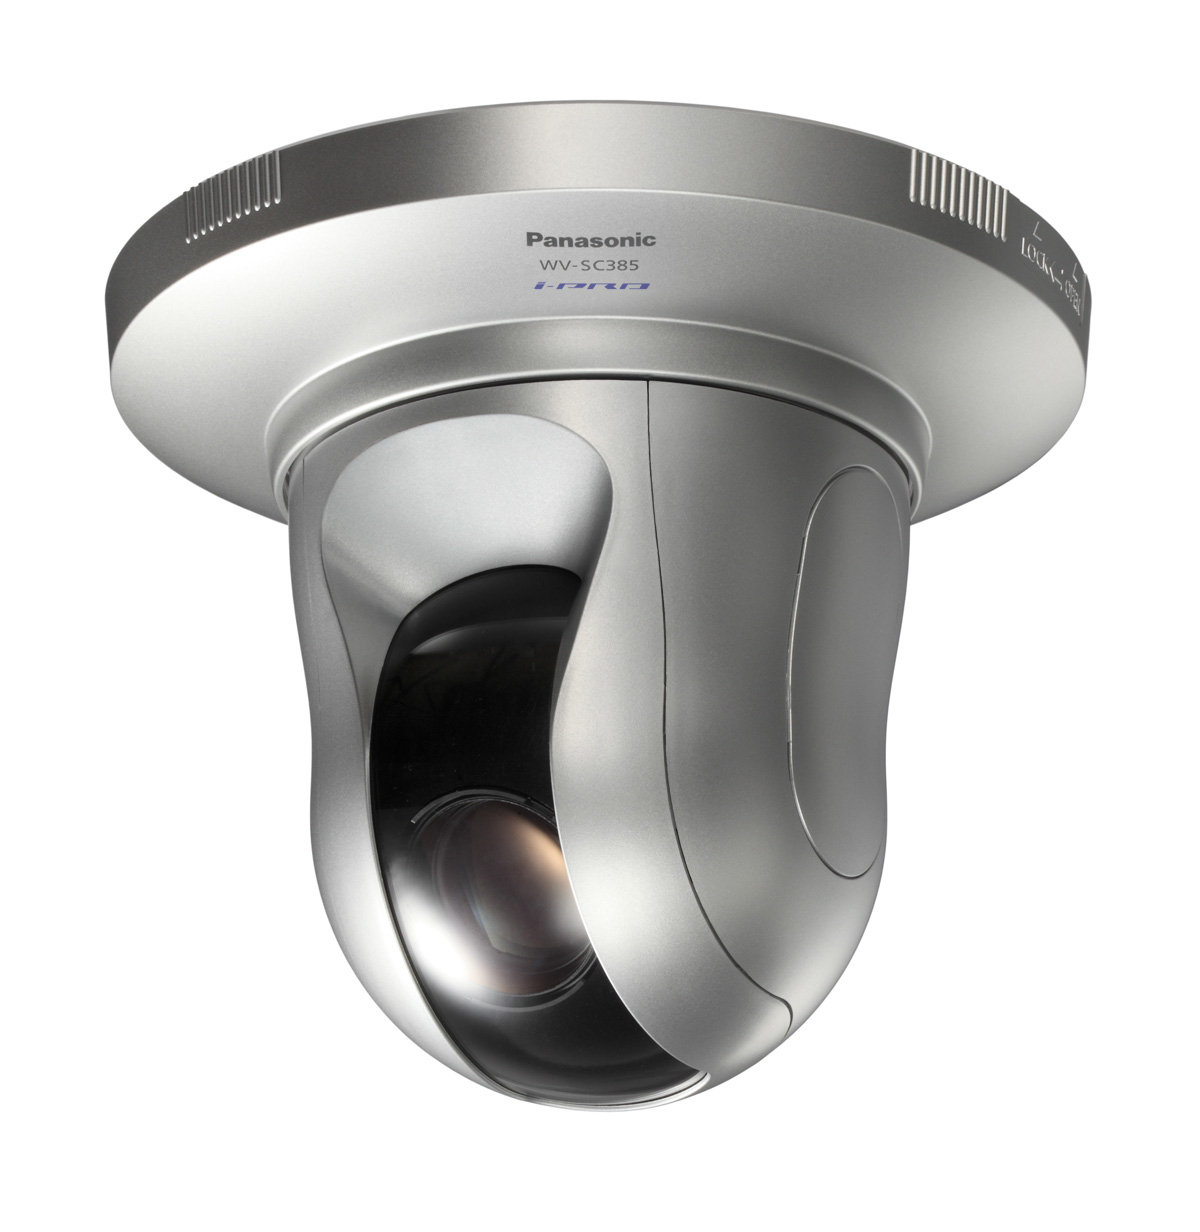 Panasonic WV-SC385 Indoor & outdoor Dome Silver surveillance camera